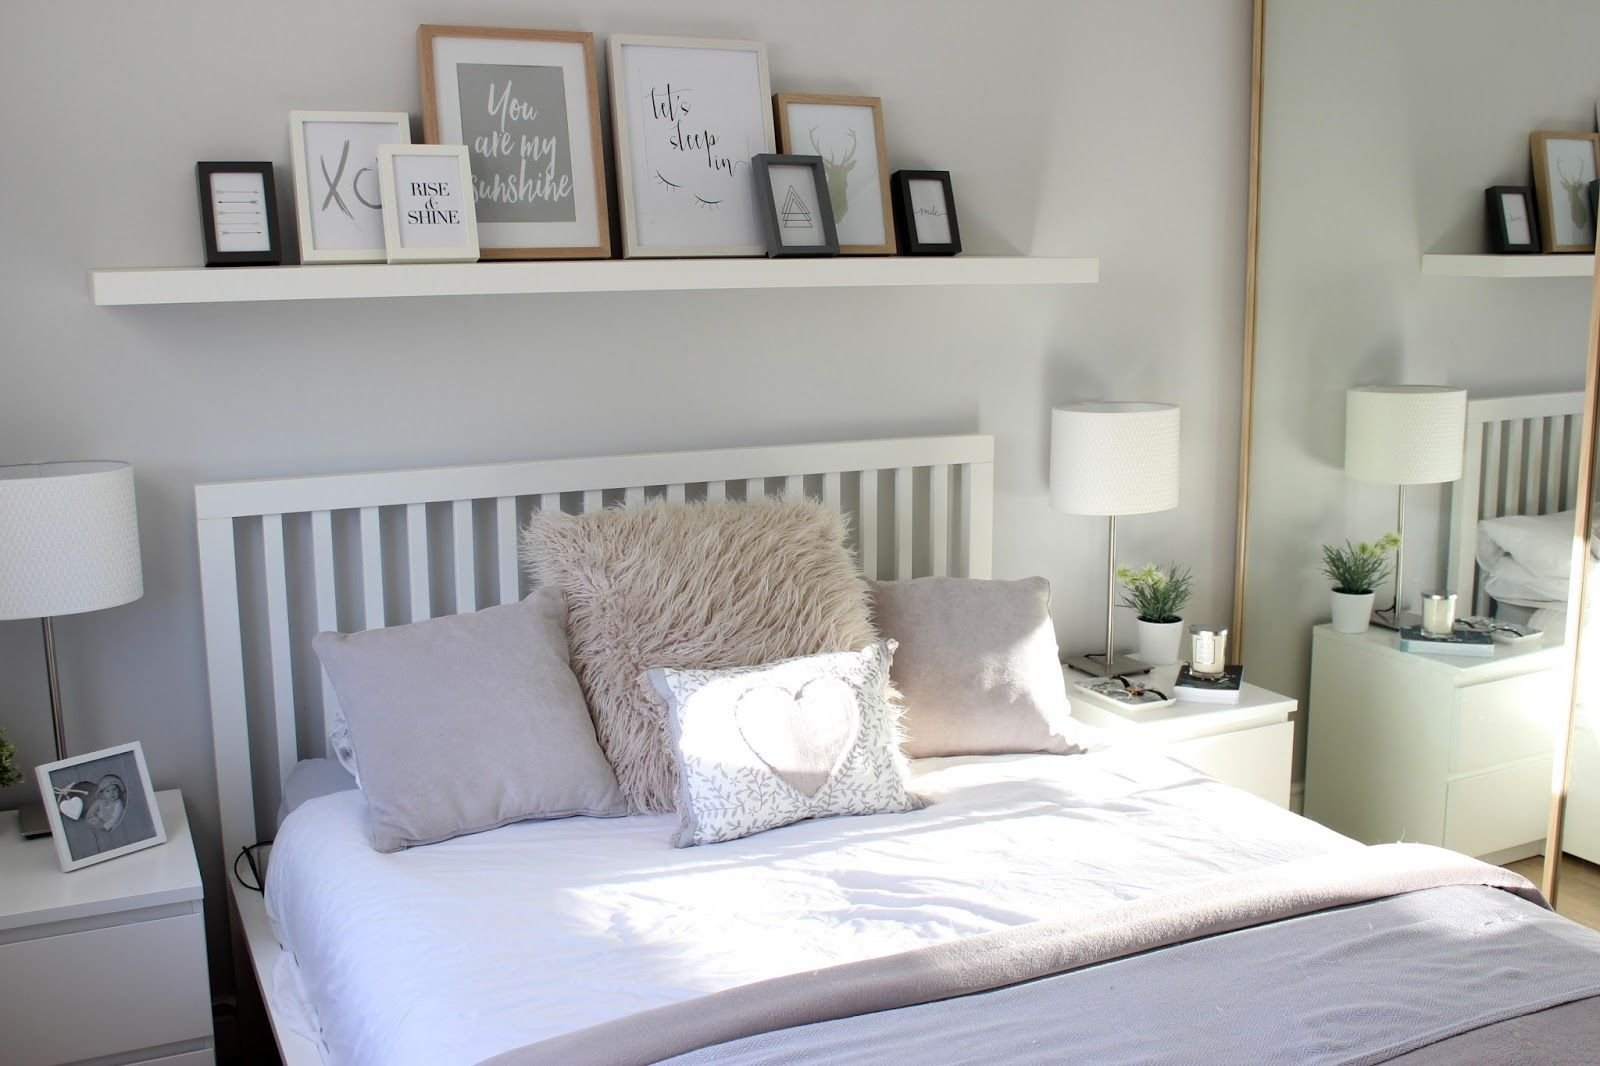 Best Home Bedroom Tour Apt Ideas In 2019 Home Bedroom With Pictures